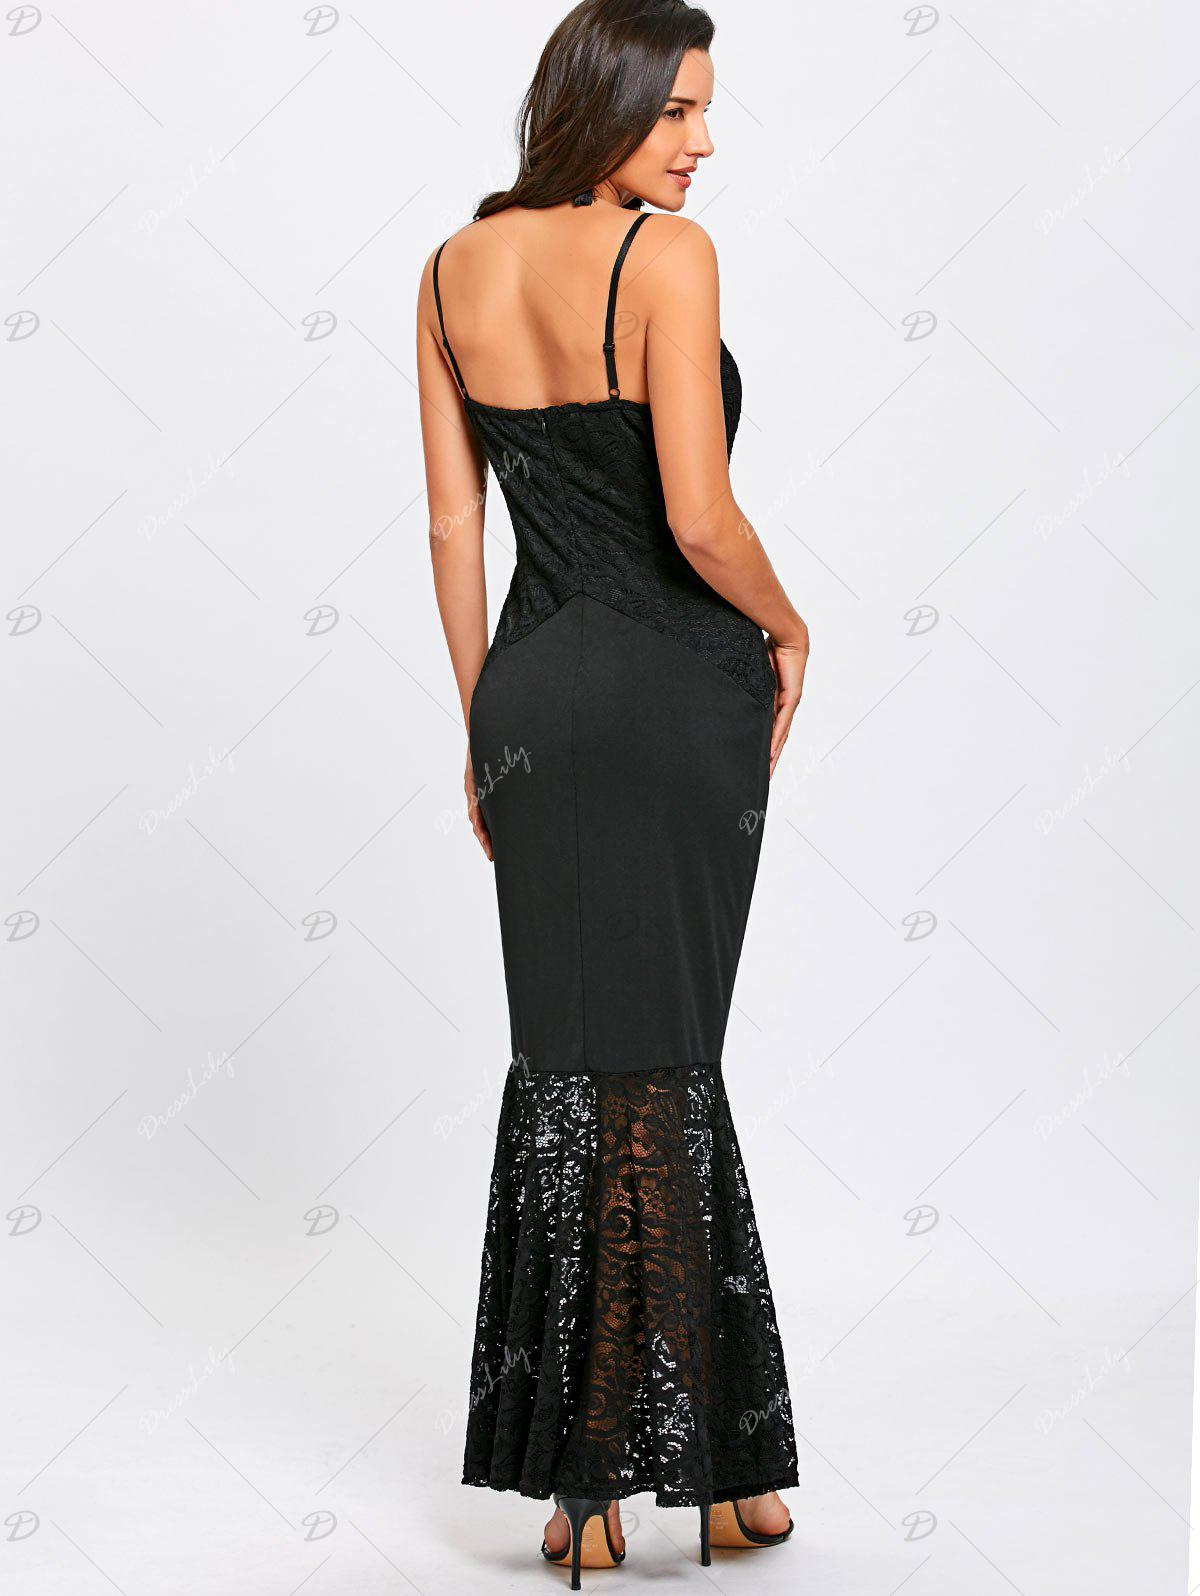 Lace Insert Spaghetti Strap Mermaid Dress - BLACK S